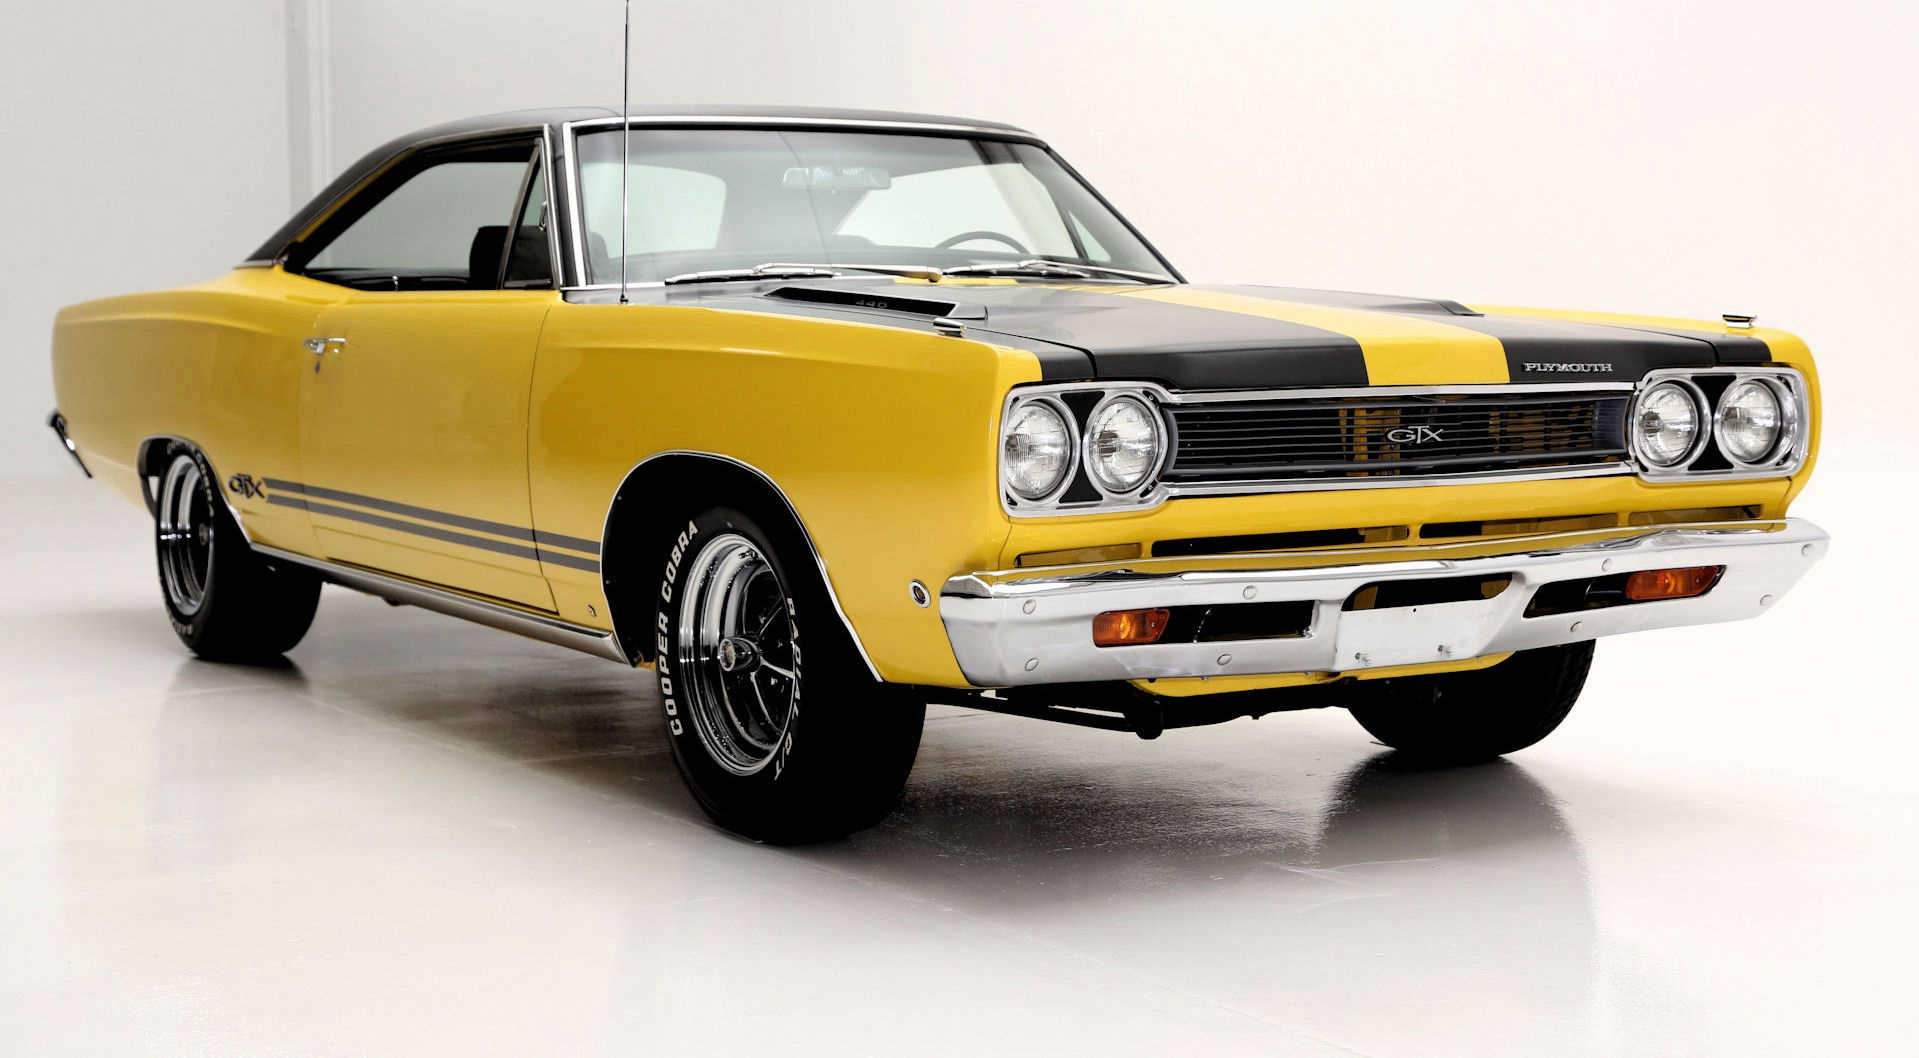 1968 Plymouth Gtx Gtx American Dream Machines Classic